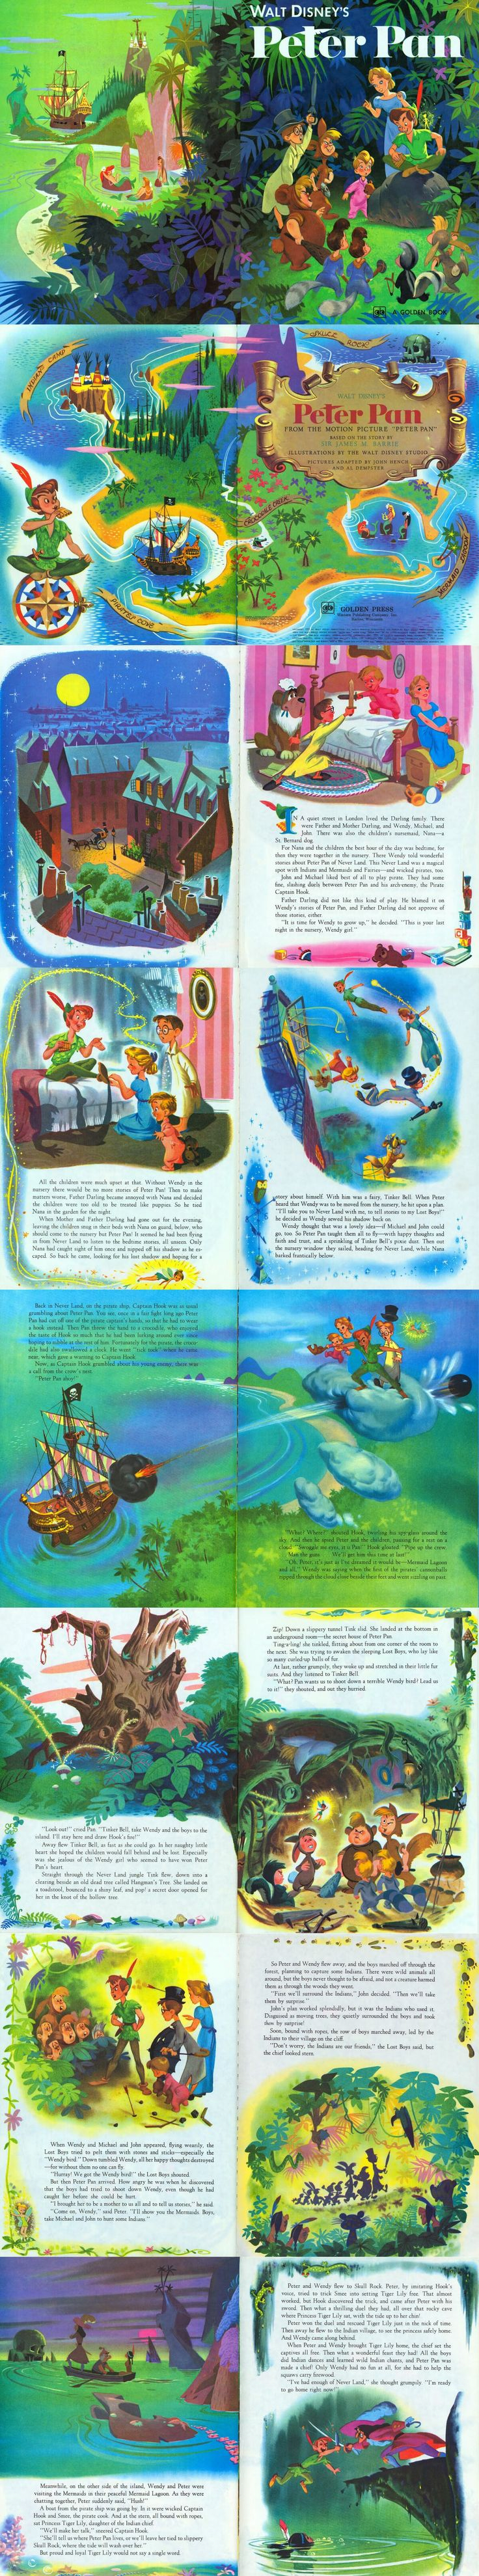 best ideas about peter pan cartoon peter pan 17 best ideas about peter pan cartoon peter pan 1953 peter pan disney and peter pan characters